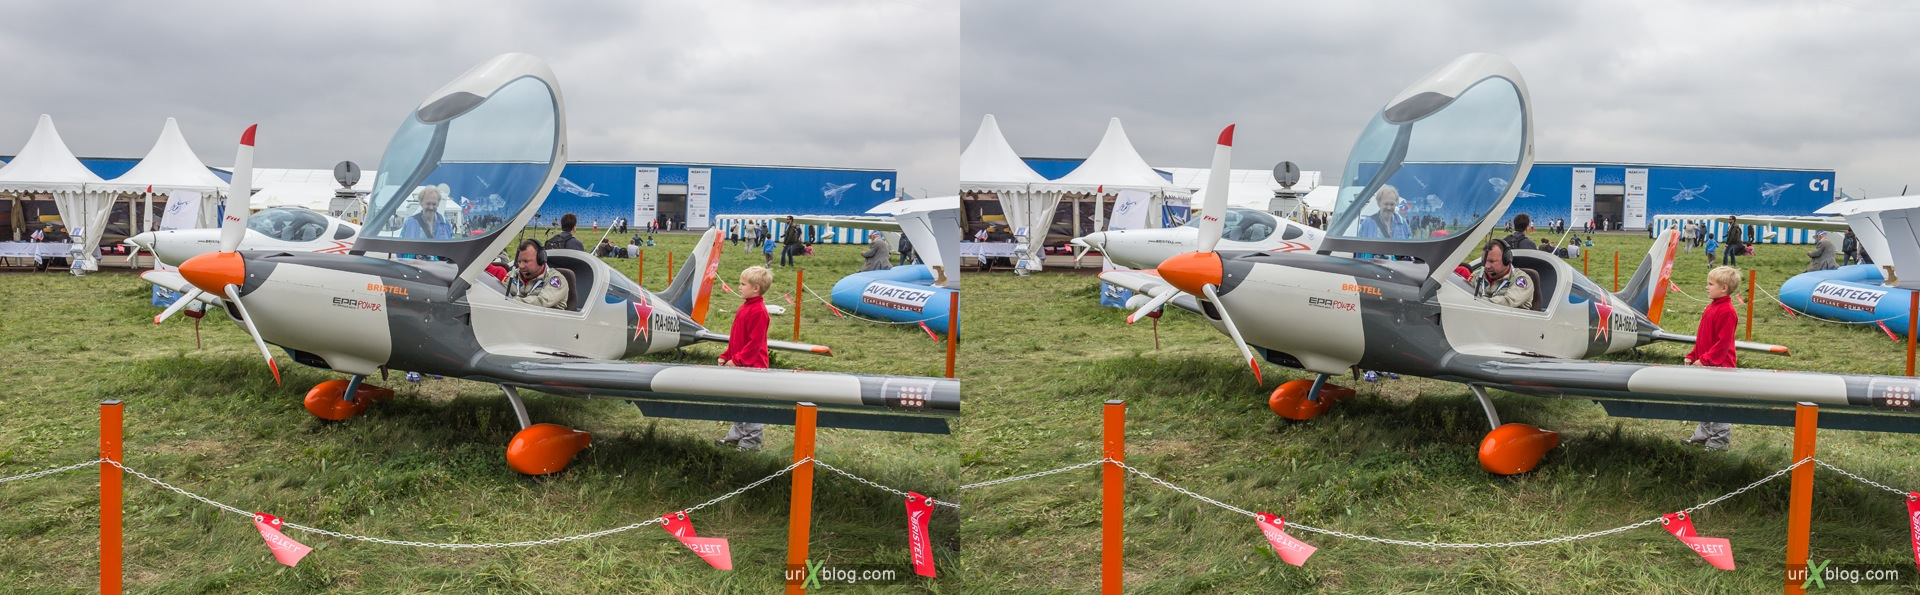 2013, Bristel NG-5, MAKS, International Aviation and Space Salon, Russia, Ramenskoye airfield, airplane, 3D, stereo pair, cross-eyed, crossview, cross view stereo pair, stereoscopic